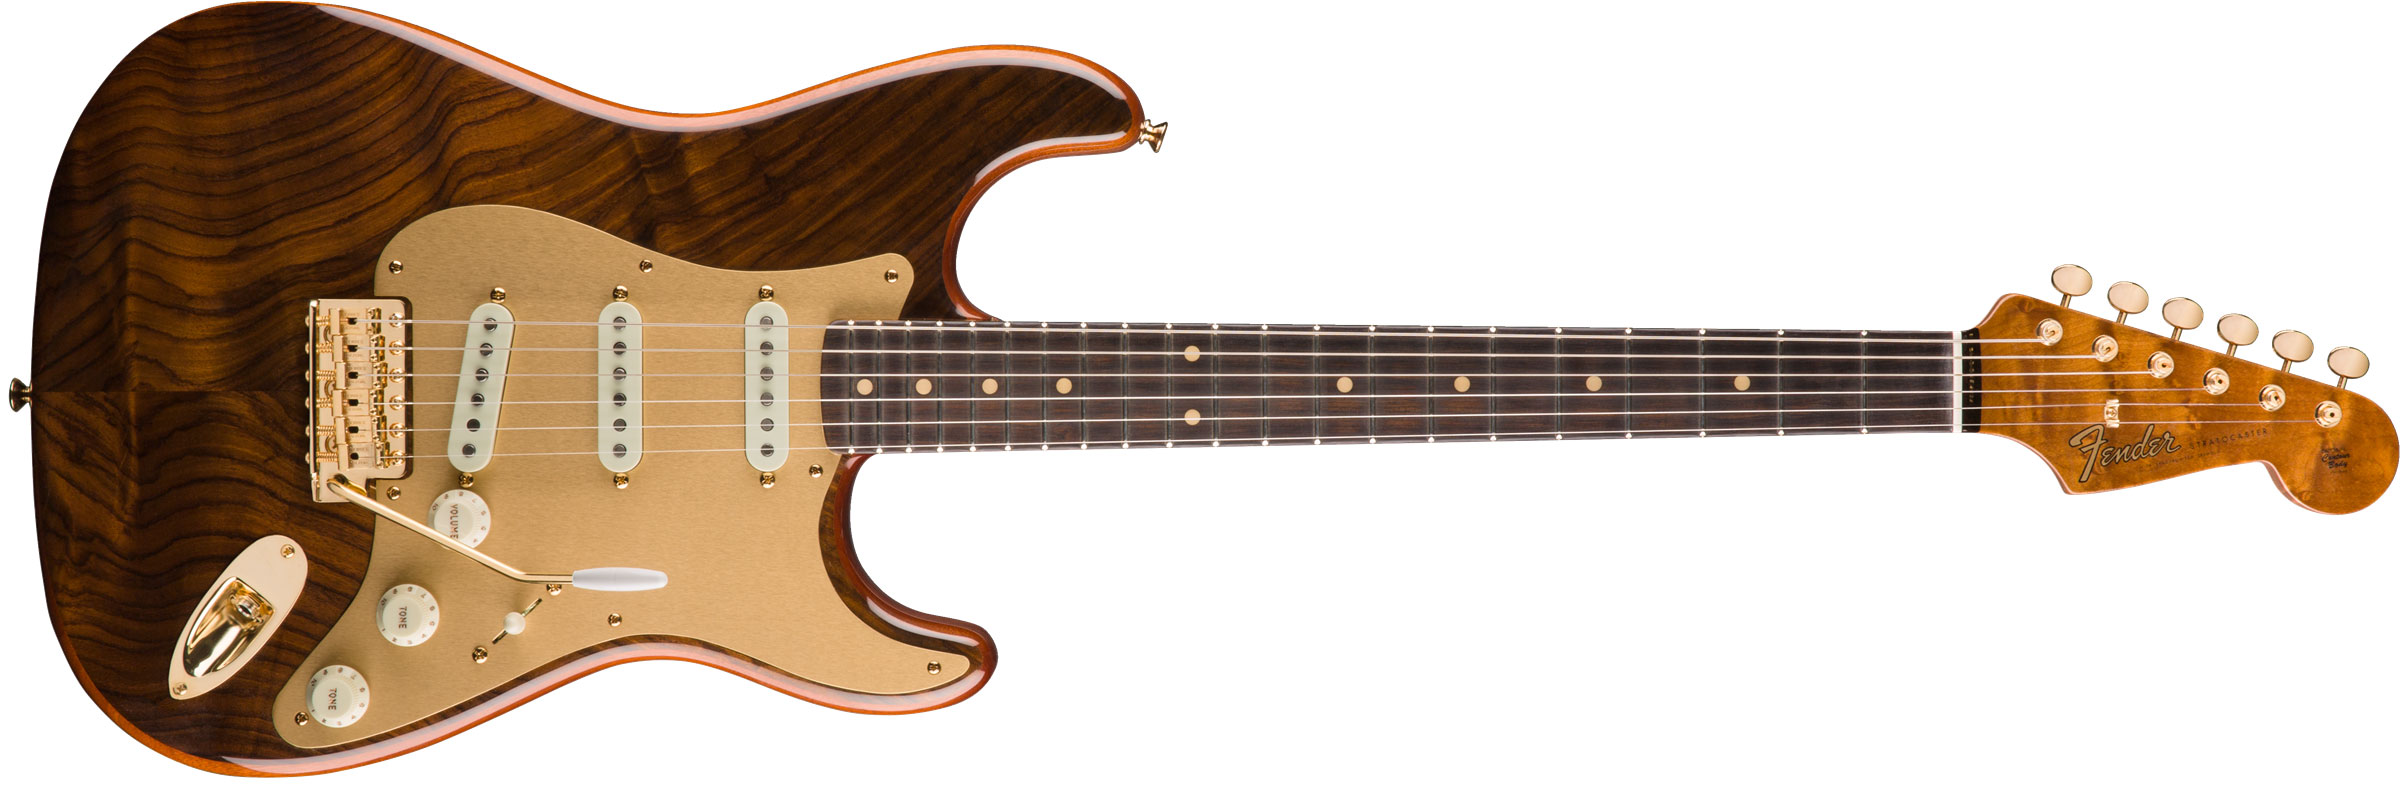 GUITARRA FENDER STRATOCASTER CUSTOM ARTISAN FIGURED ROSEWOOD LTD EDITION 152-1090-821 NATURAL